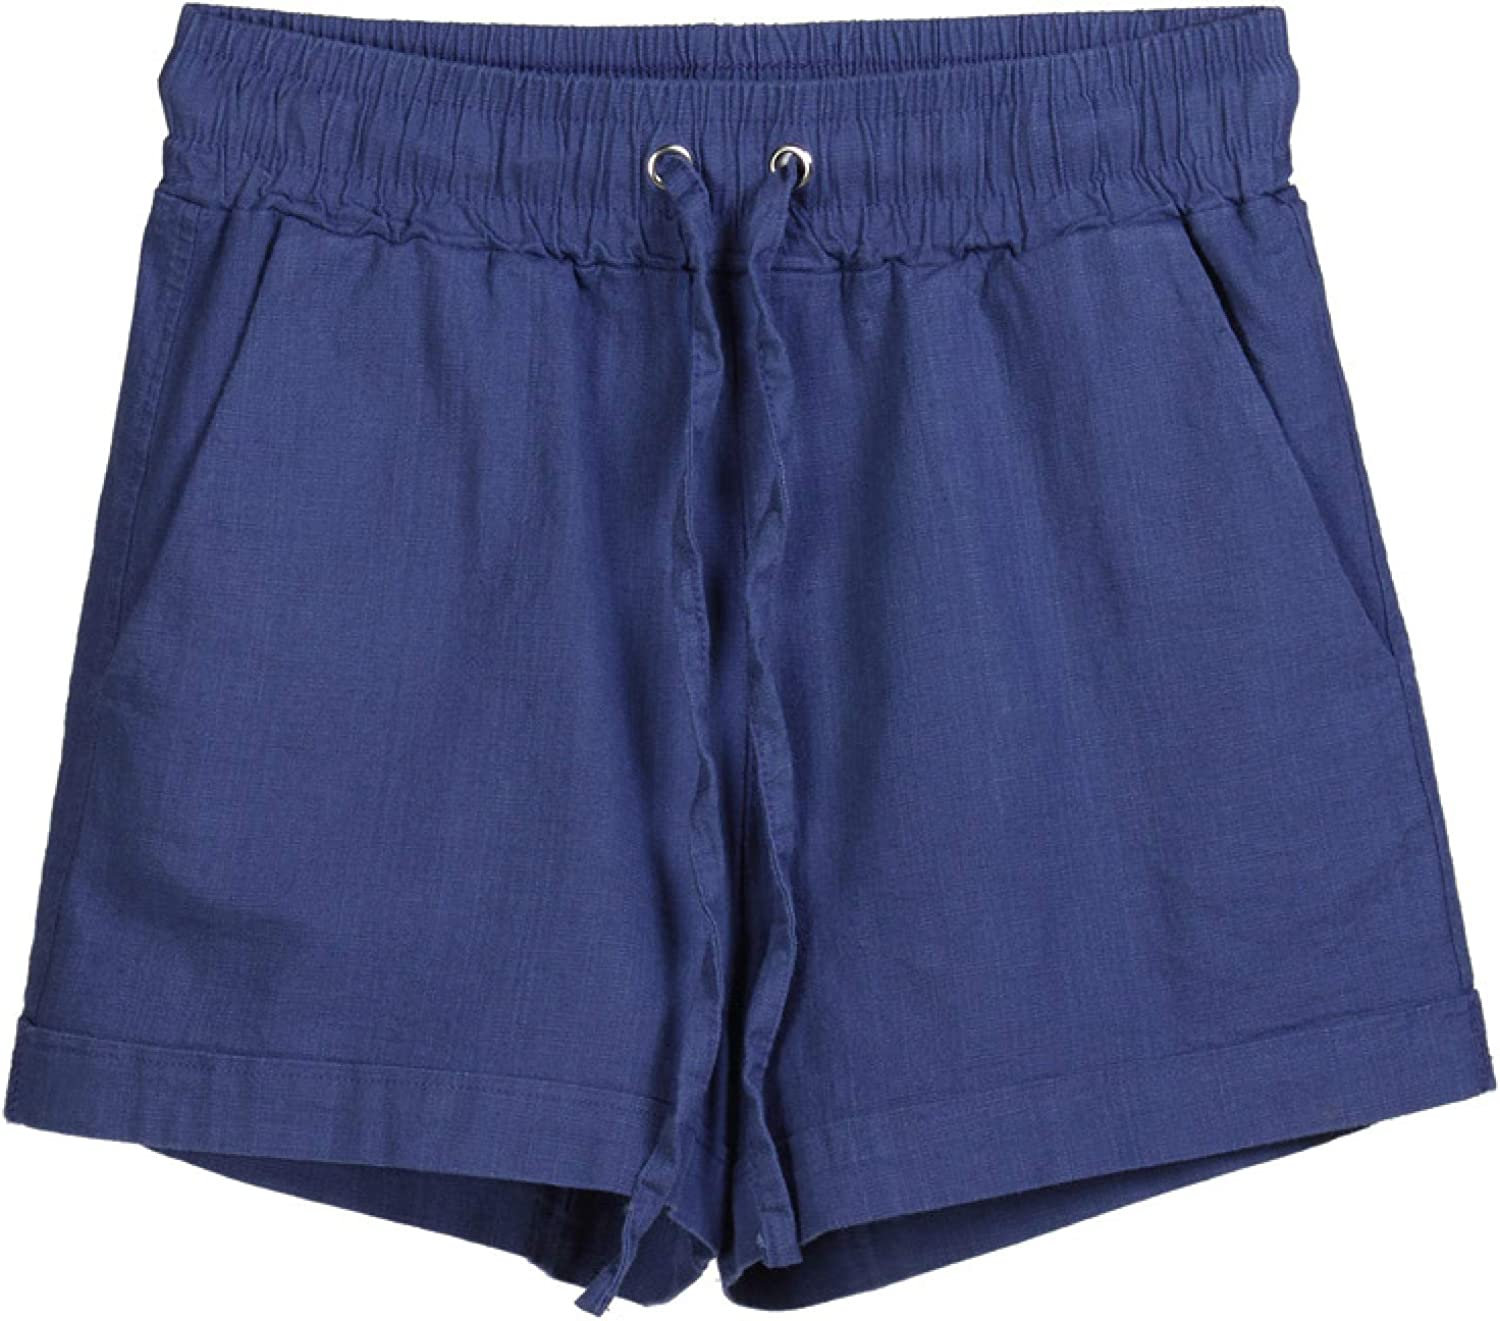 Zestion Women's Loose Casual Comfortable Stretch Shorts Summer Solid Color Adjustable